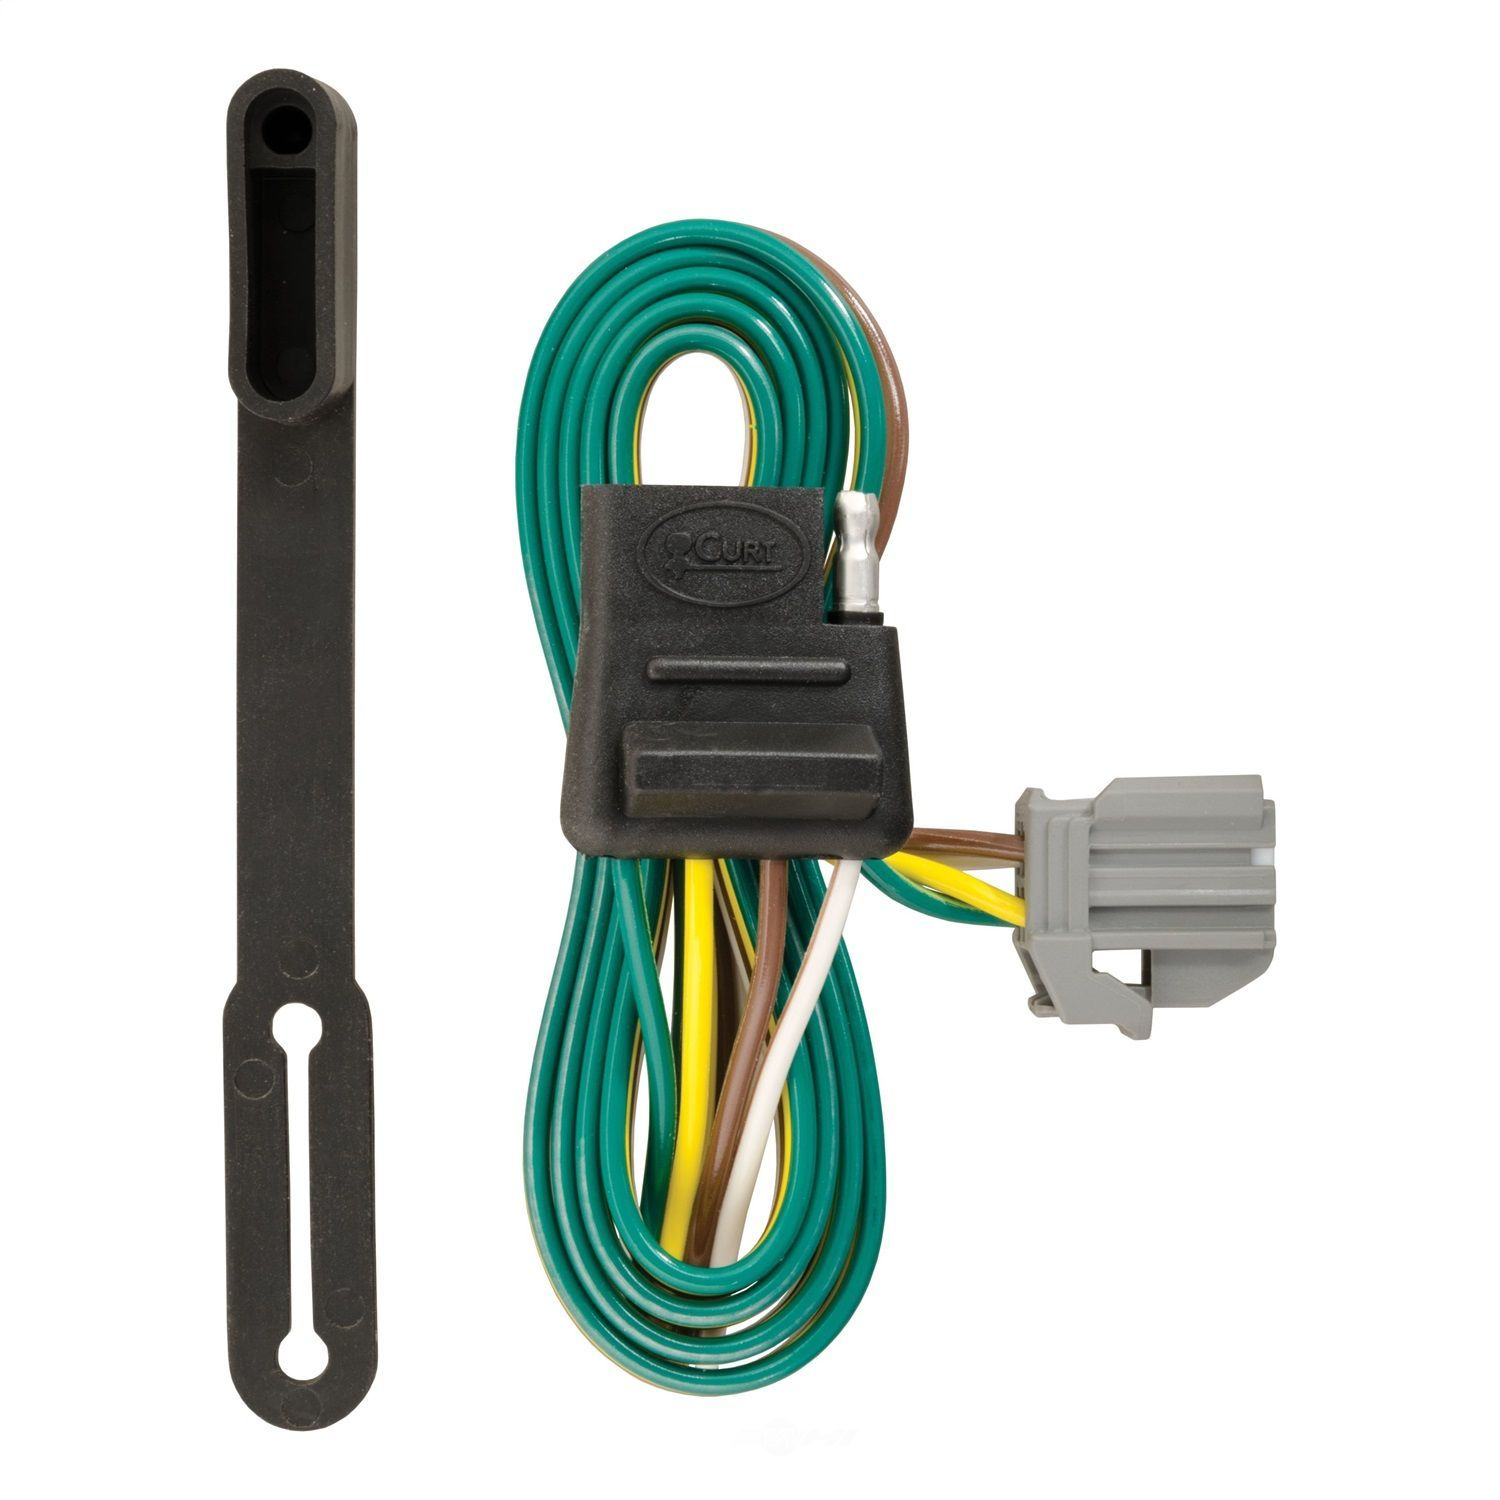 CURT MFG INC. - Vehicle To Trailer Connector W/harness - CUR 56210